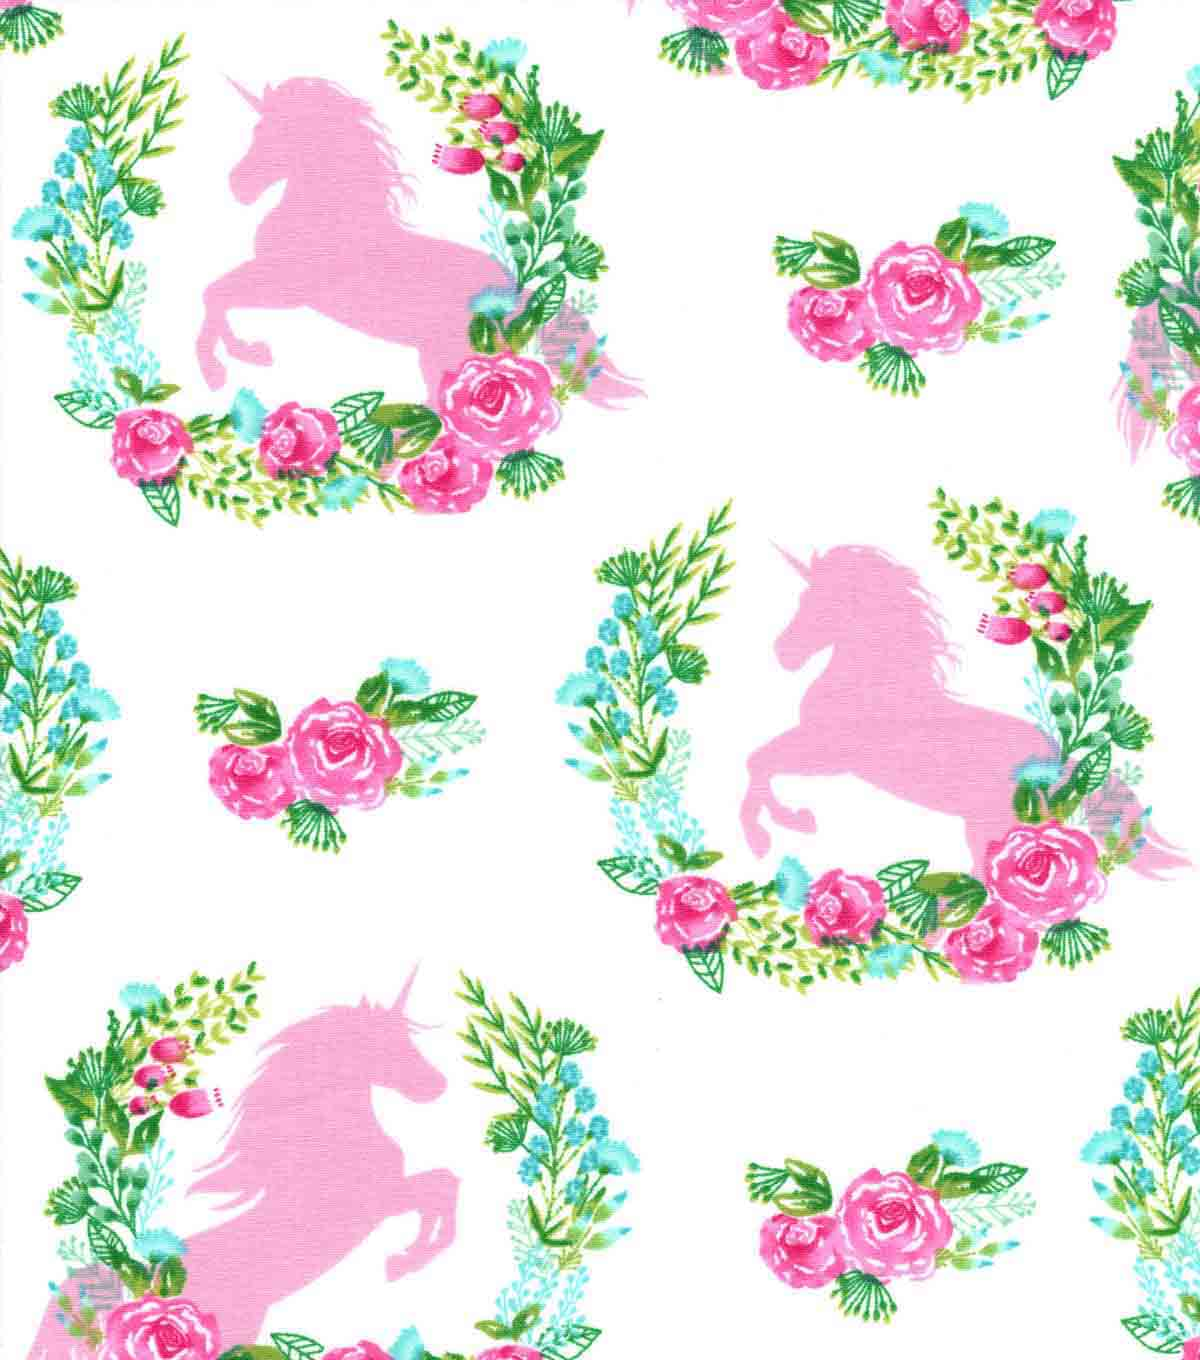 Nursery Cotton Fabric 43\u0027\u0027-Unicorn & Floral Spray